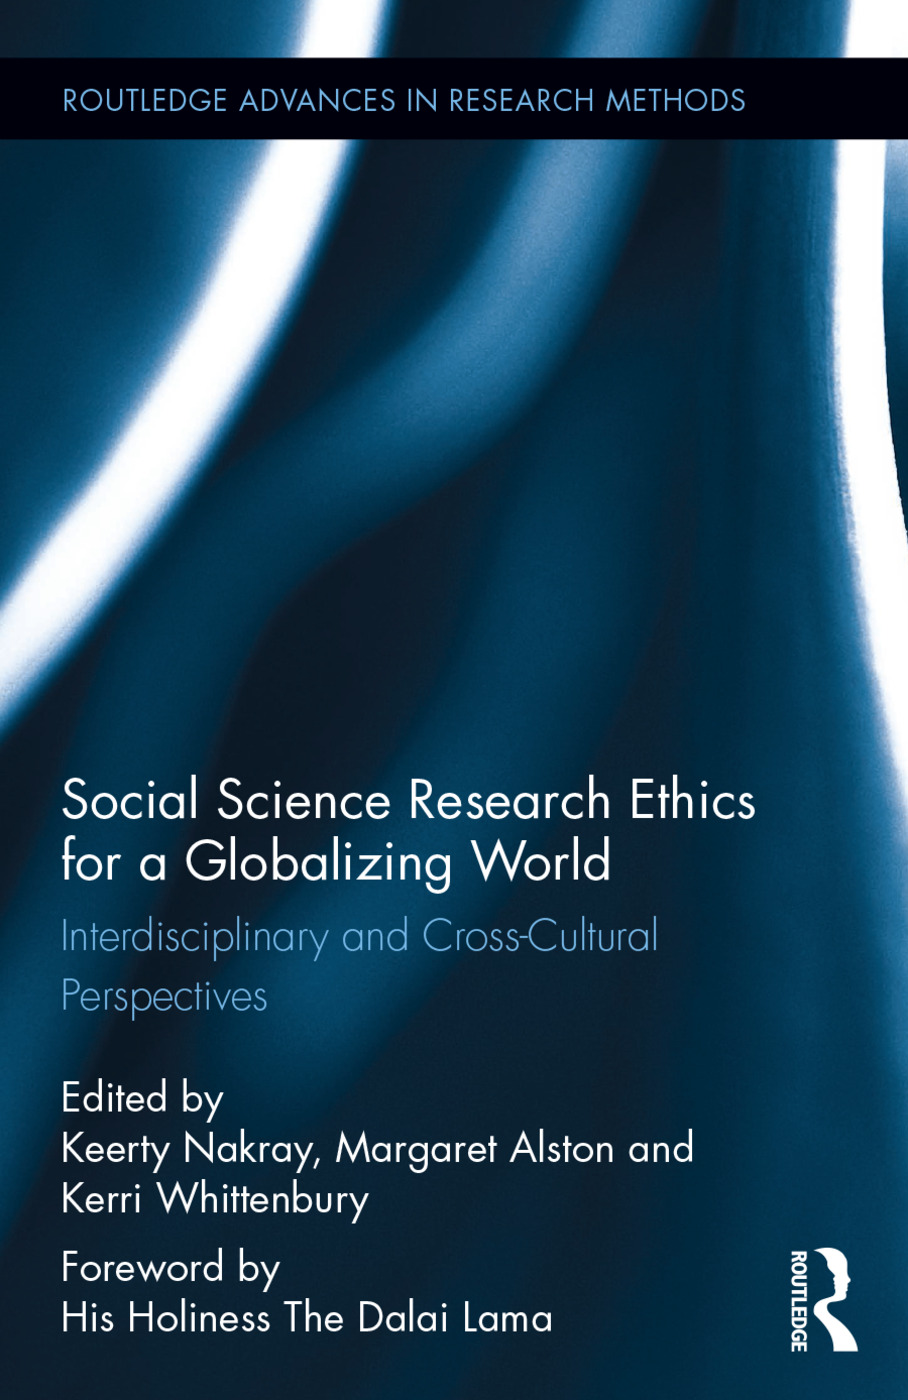 Social Science Research Ethics for a Globalizing World: Interdisciplinary and Cross-Cultural Perspectives book cover